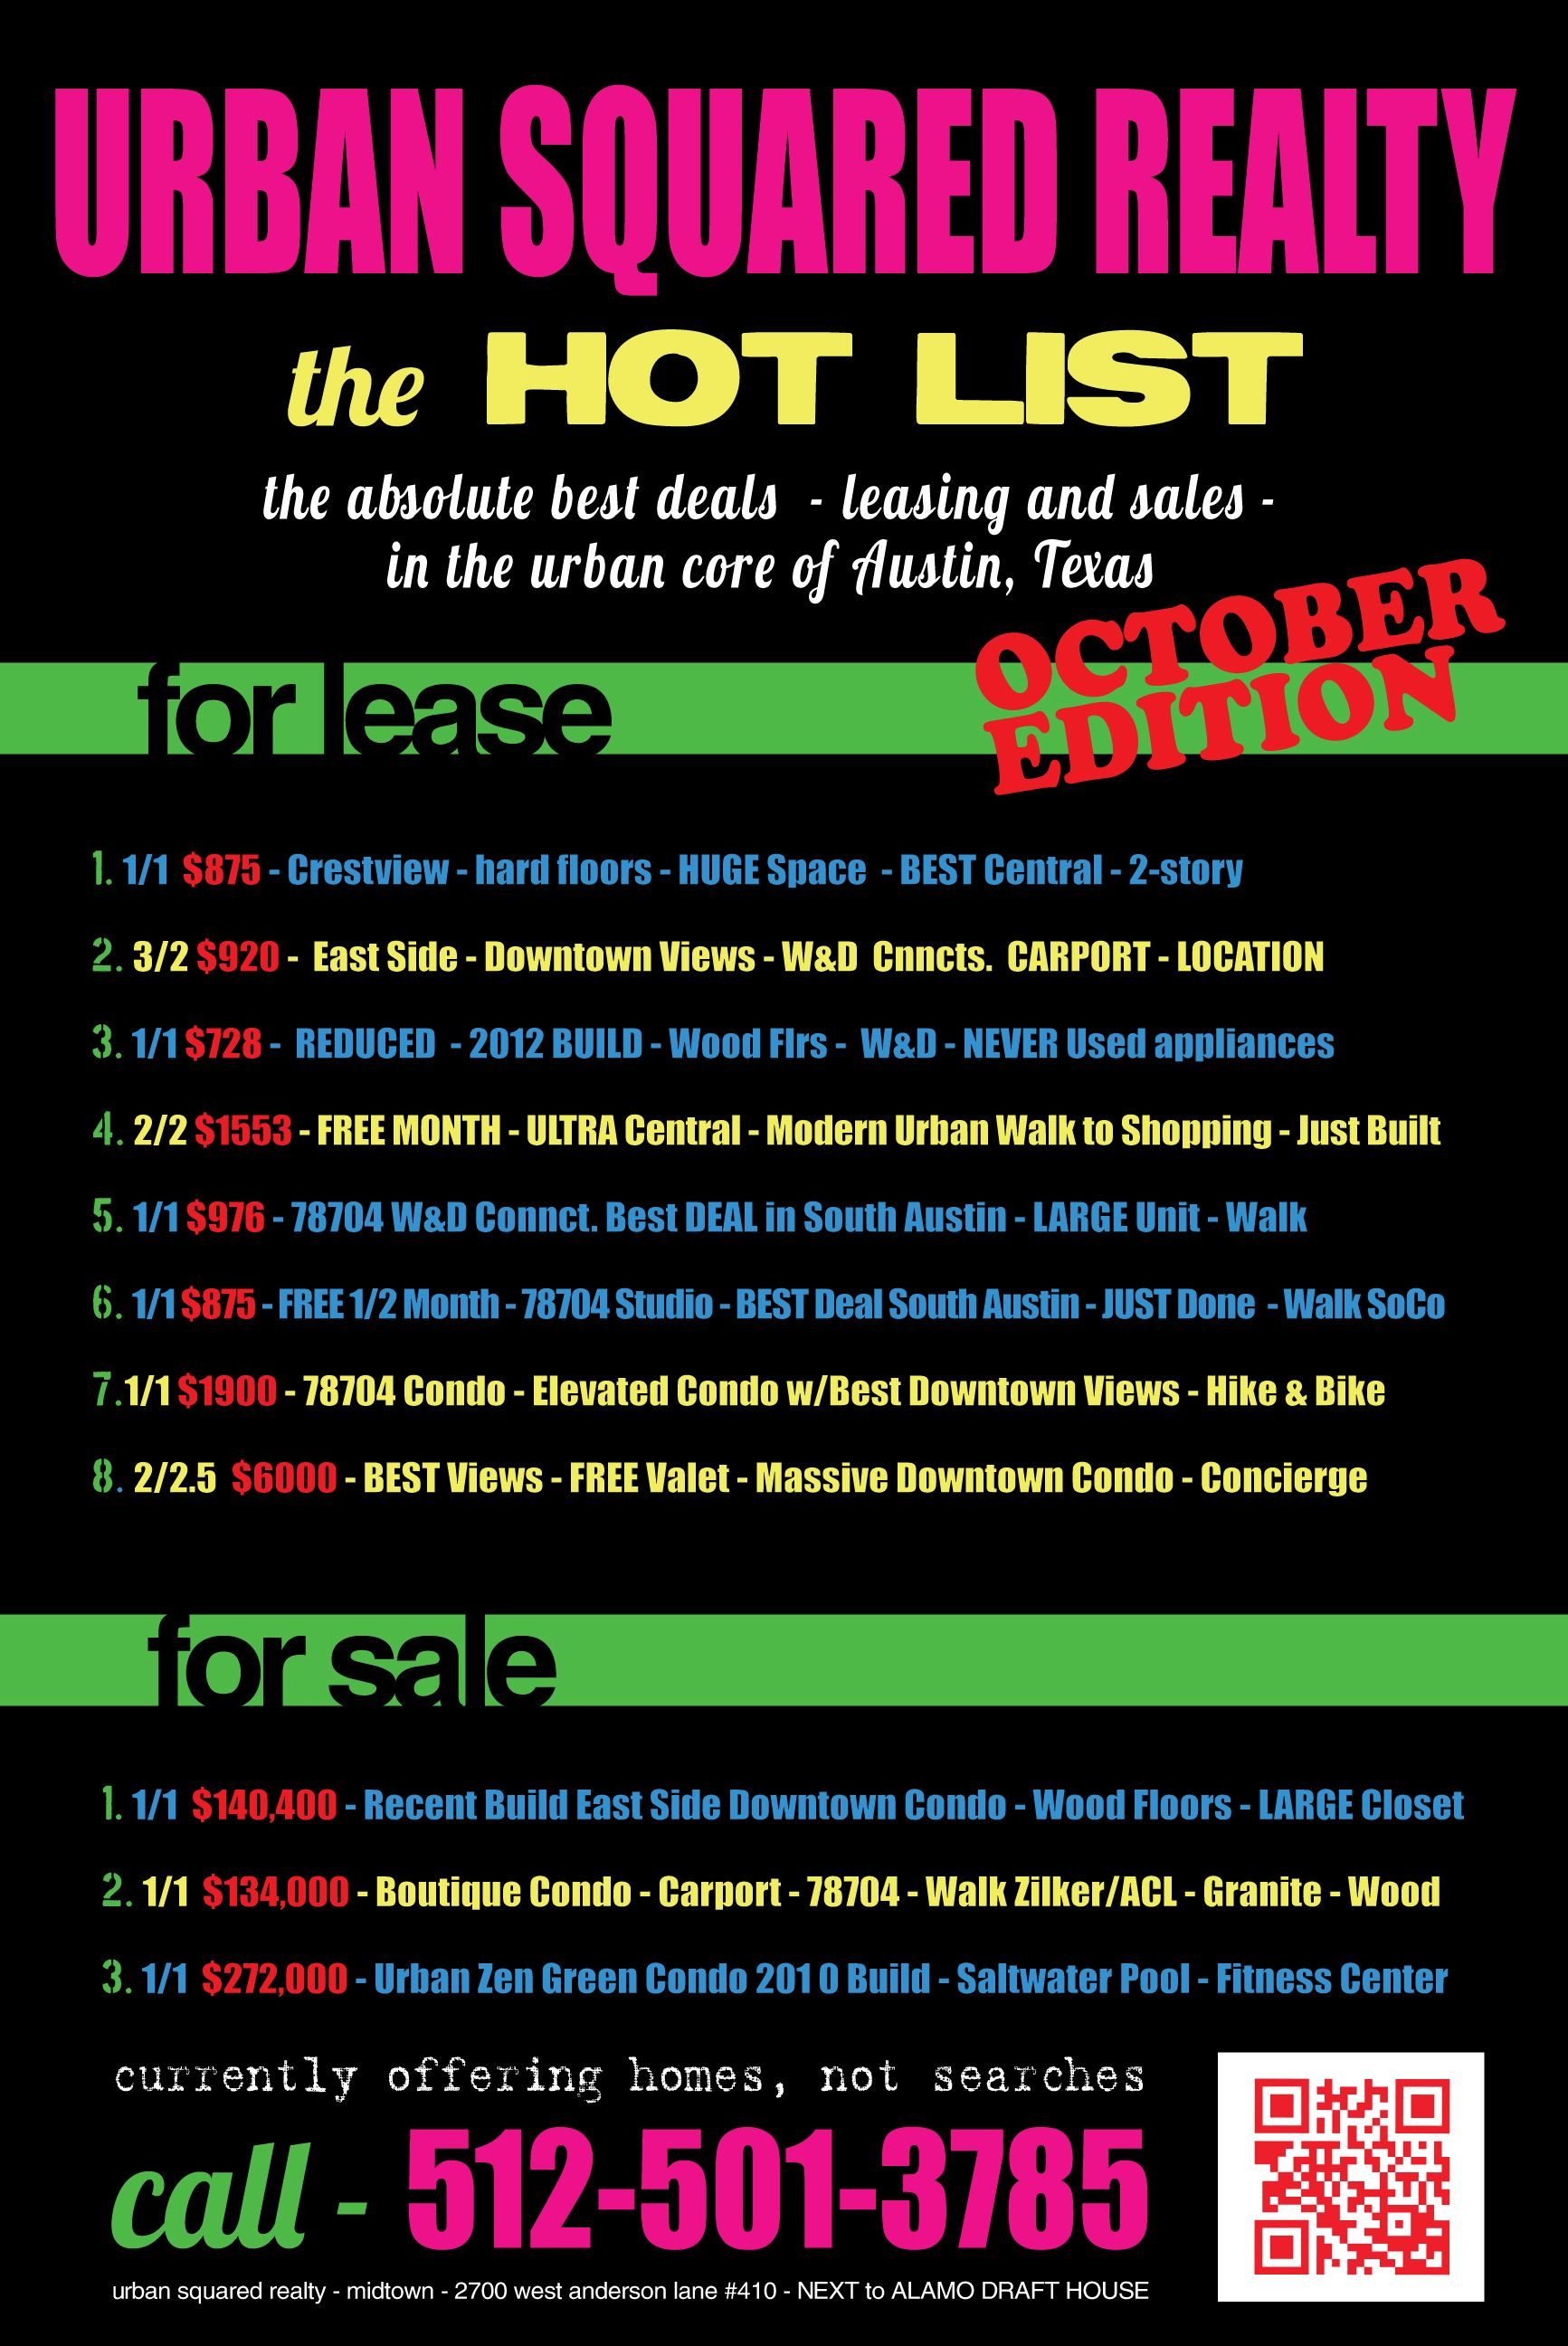 Hot deals SoCo, 78704, Downtown Austin, Allandale, East Austin, Apartments and Condos!